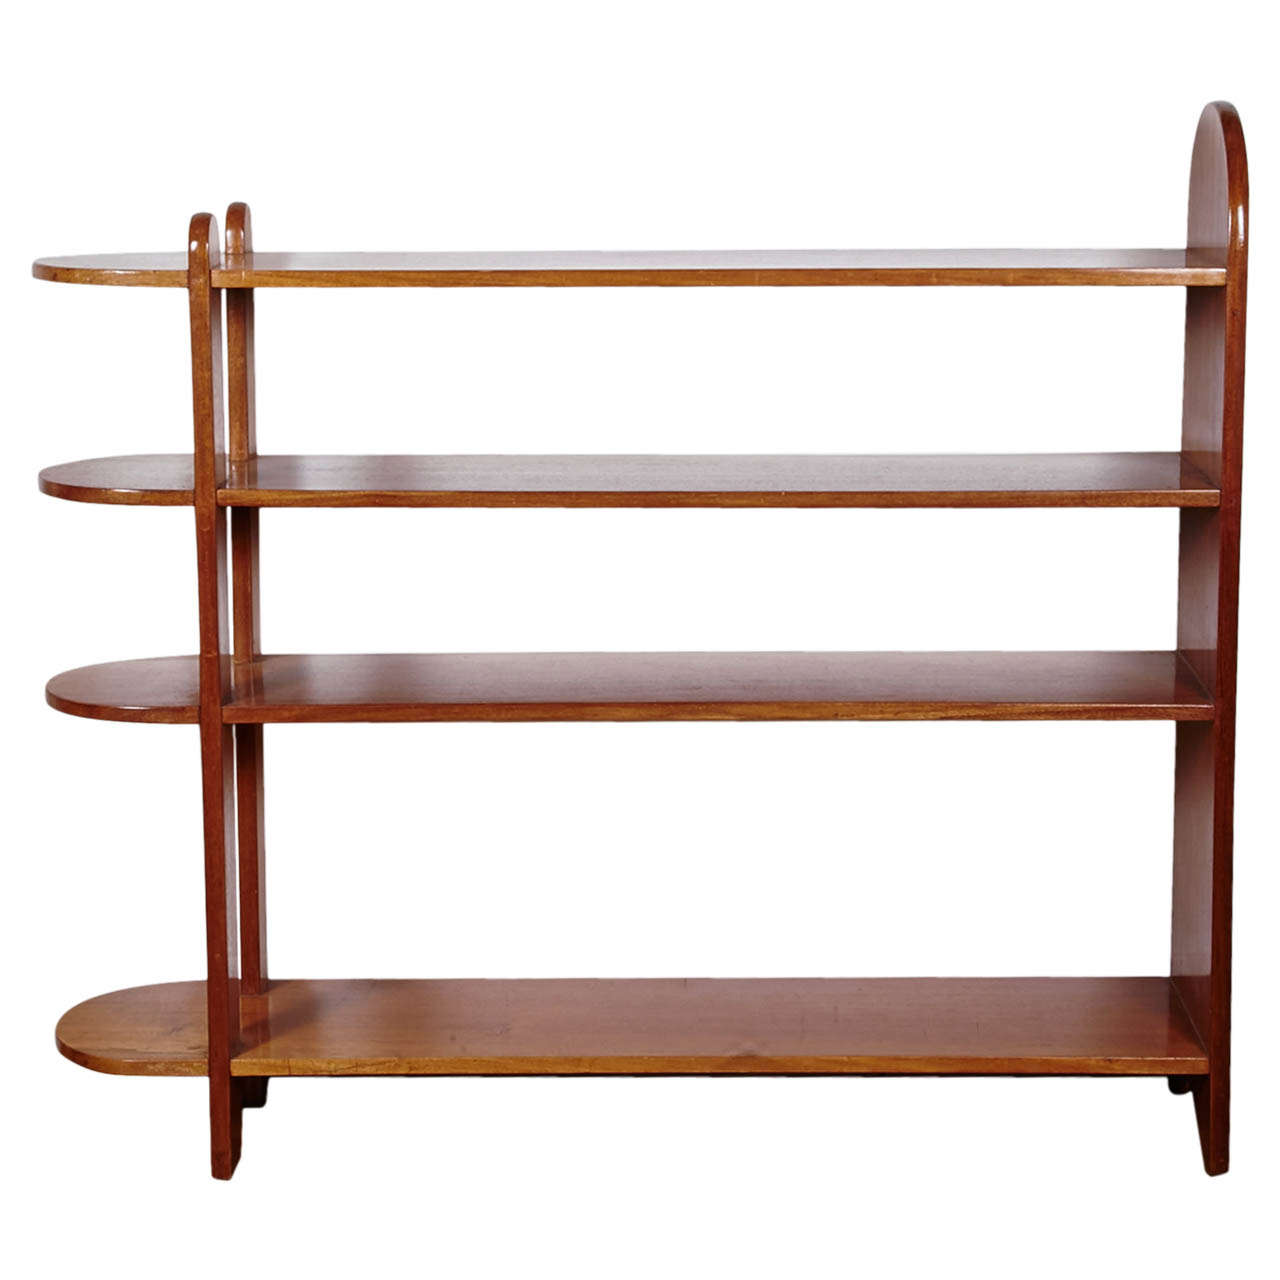 Art Deco Mahogany Shelf or Bookcase by Eugène Printz, 1932